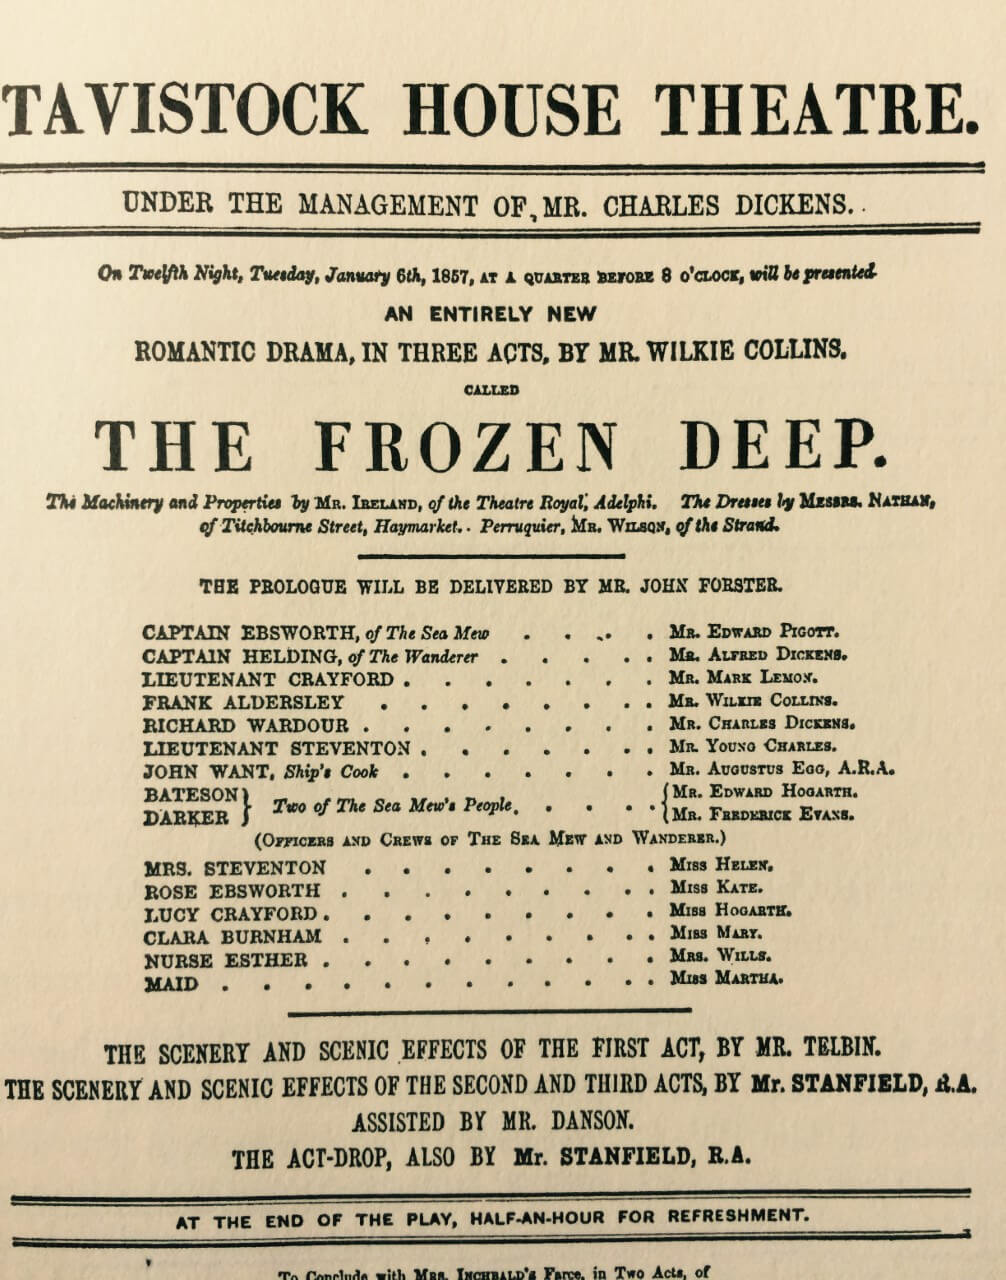 The Frozen Deep - A Play by Mr Wilkie Collins